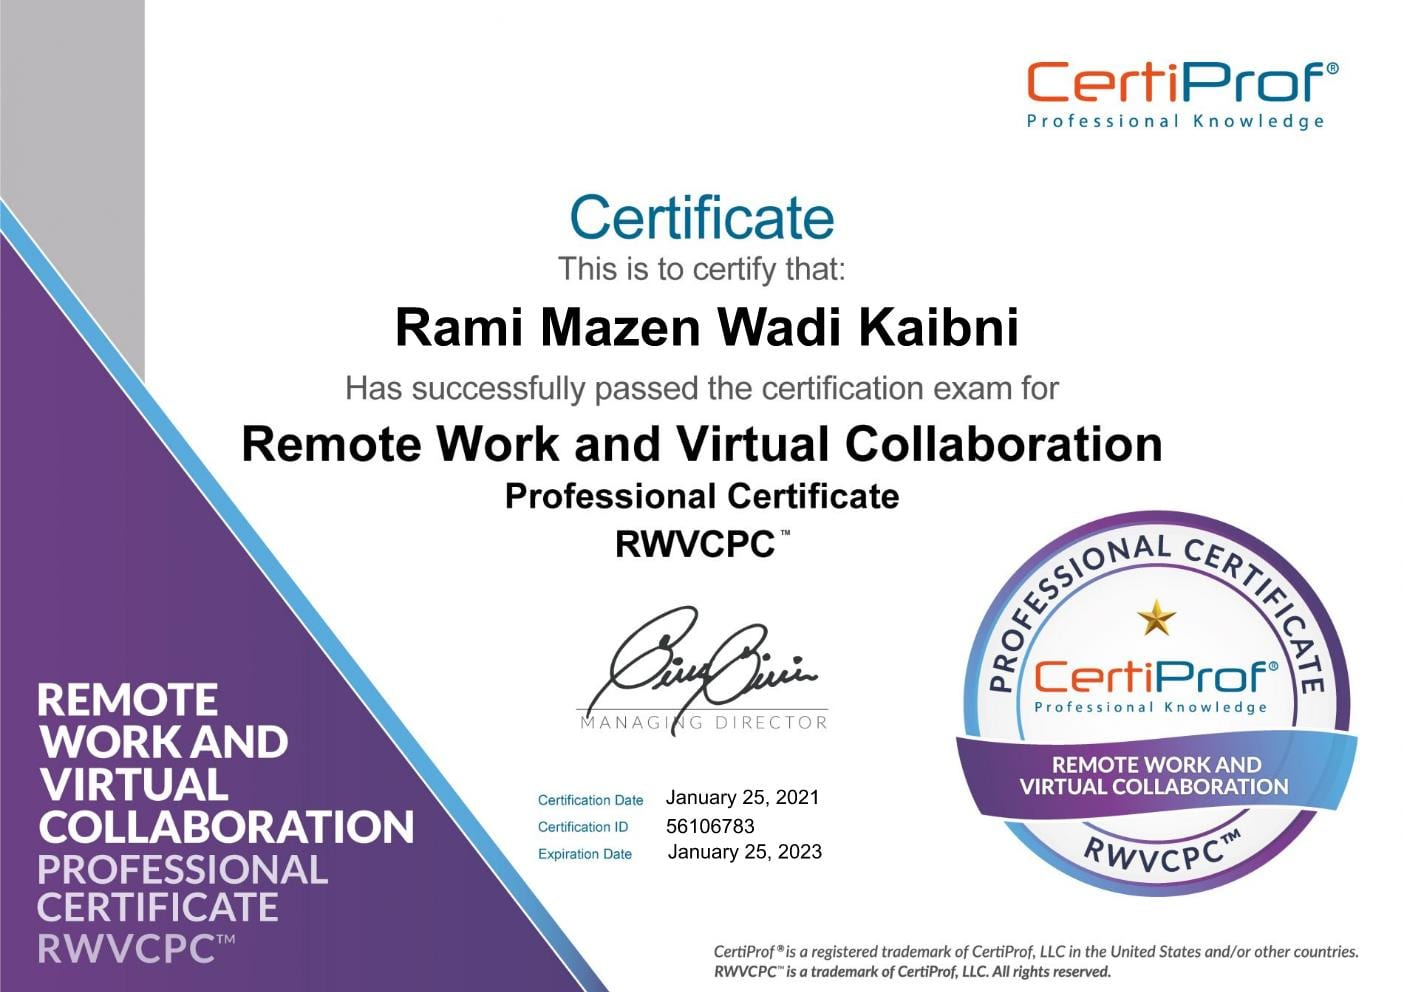 Remote Work and Virtual Collaboration